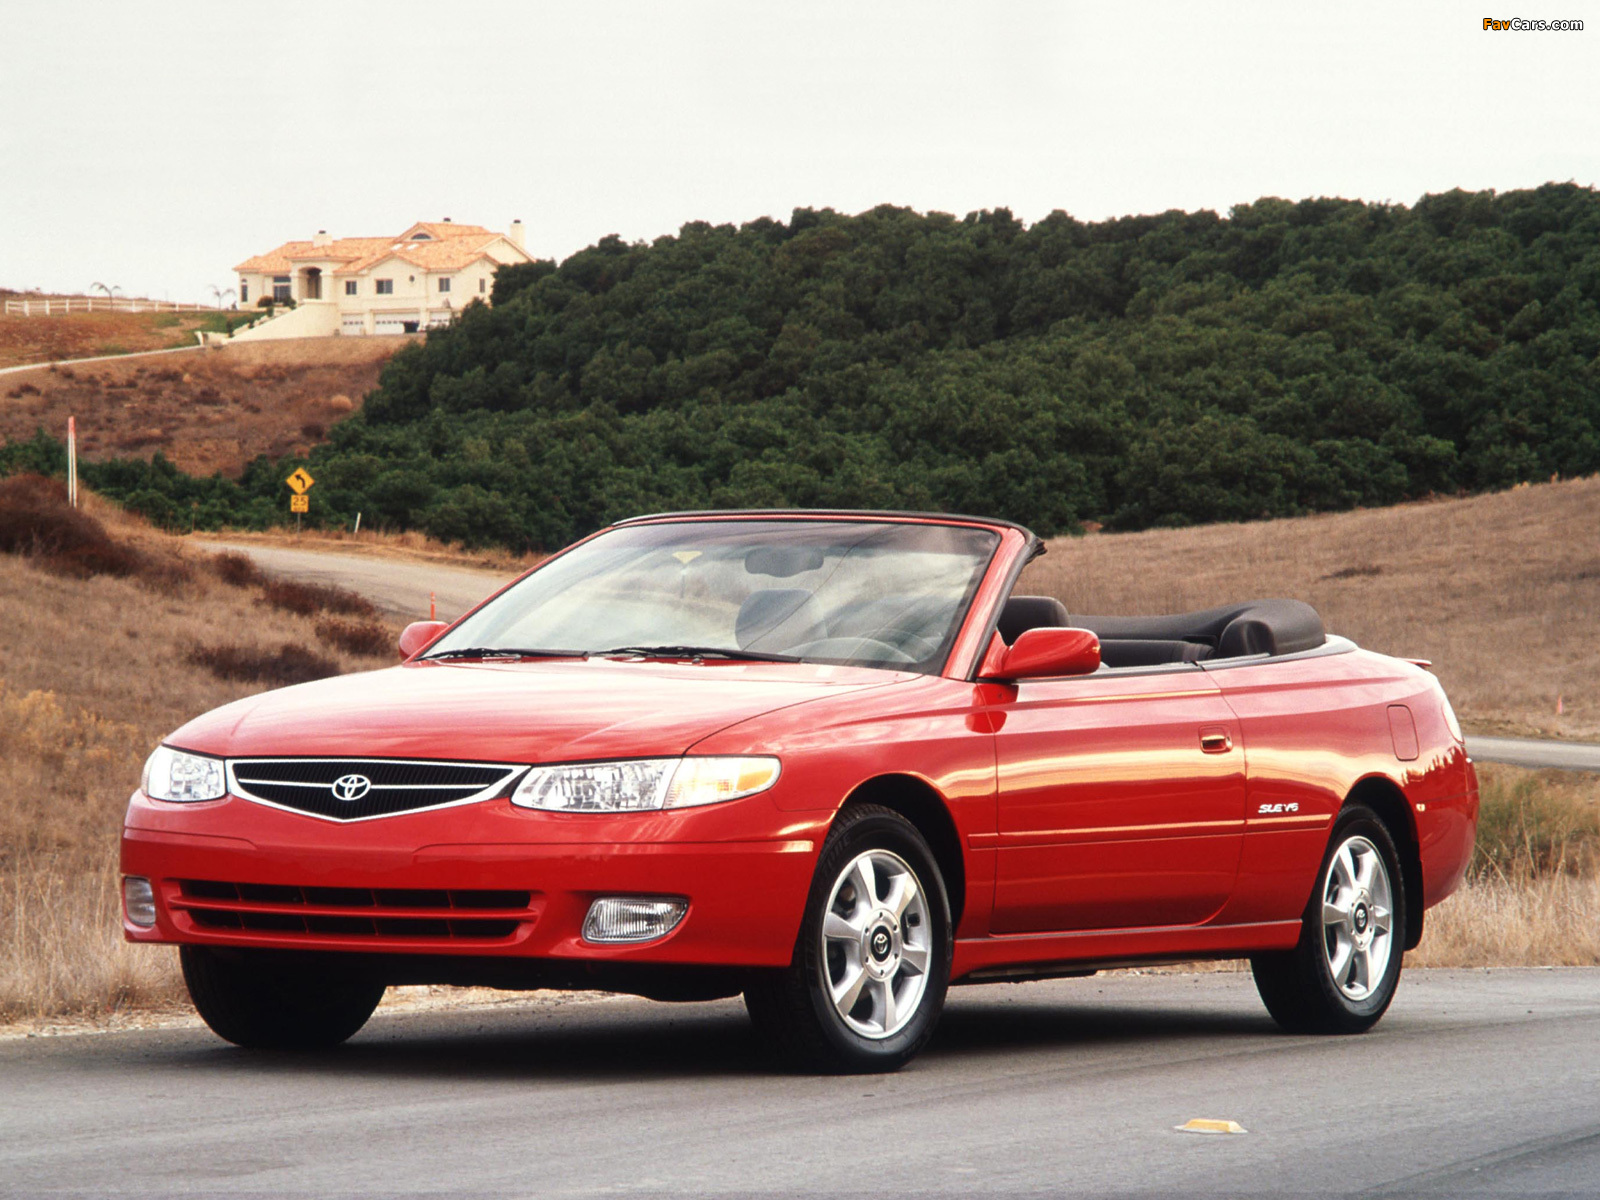 Toyota Camry Solara Convertible 1999 2002 Images 1600x1200